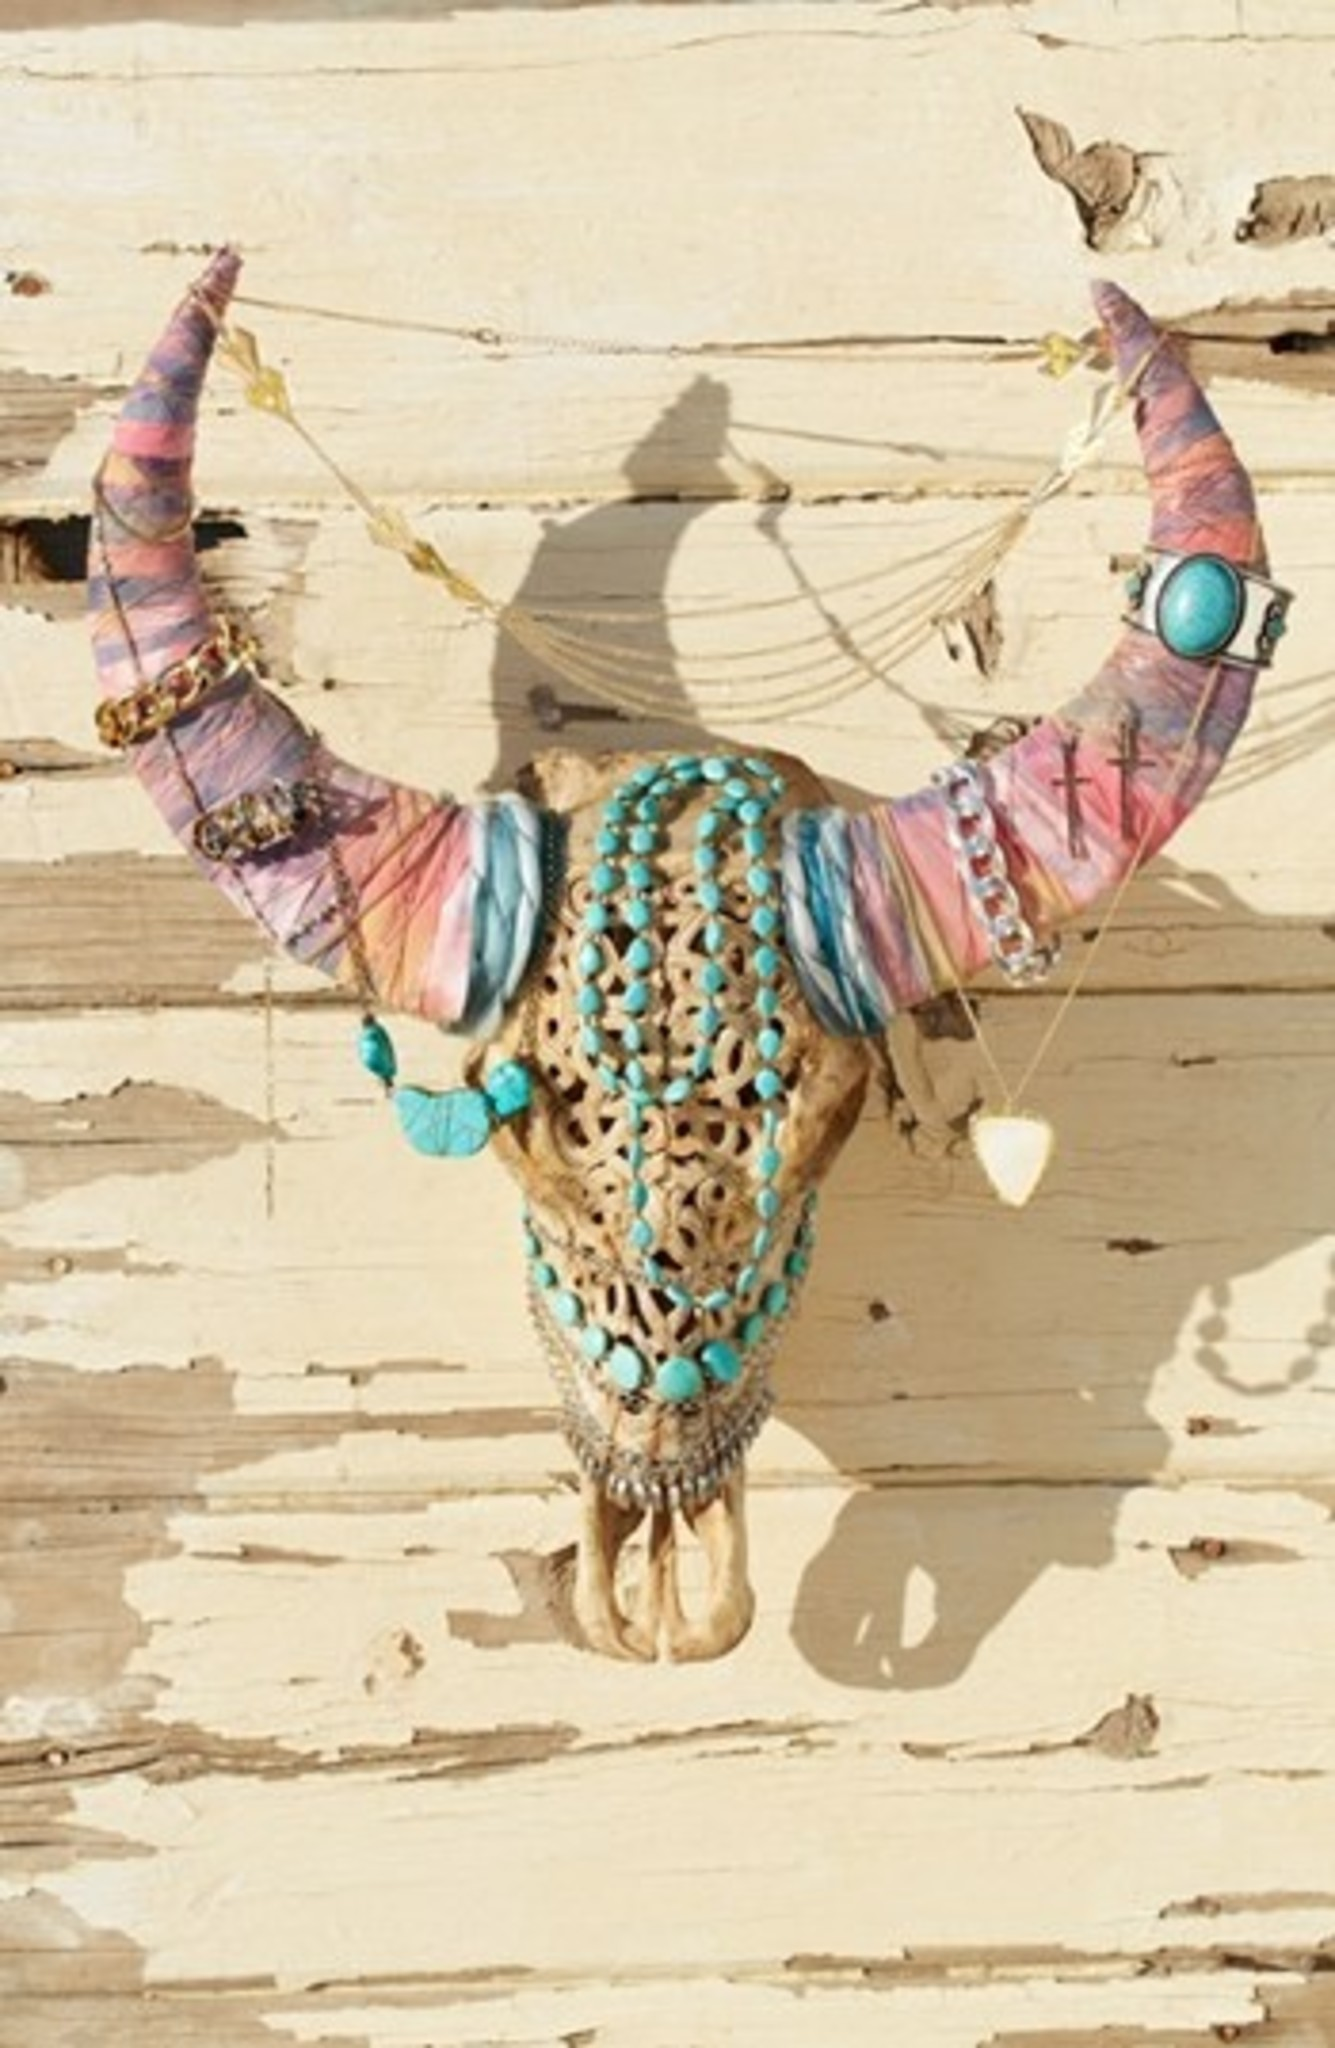 Animal skull with decorated horns used as an awesome jewelry display and jewelry storage ideas.